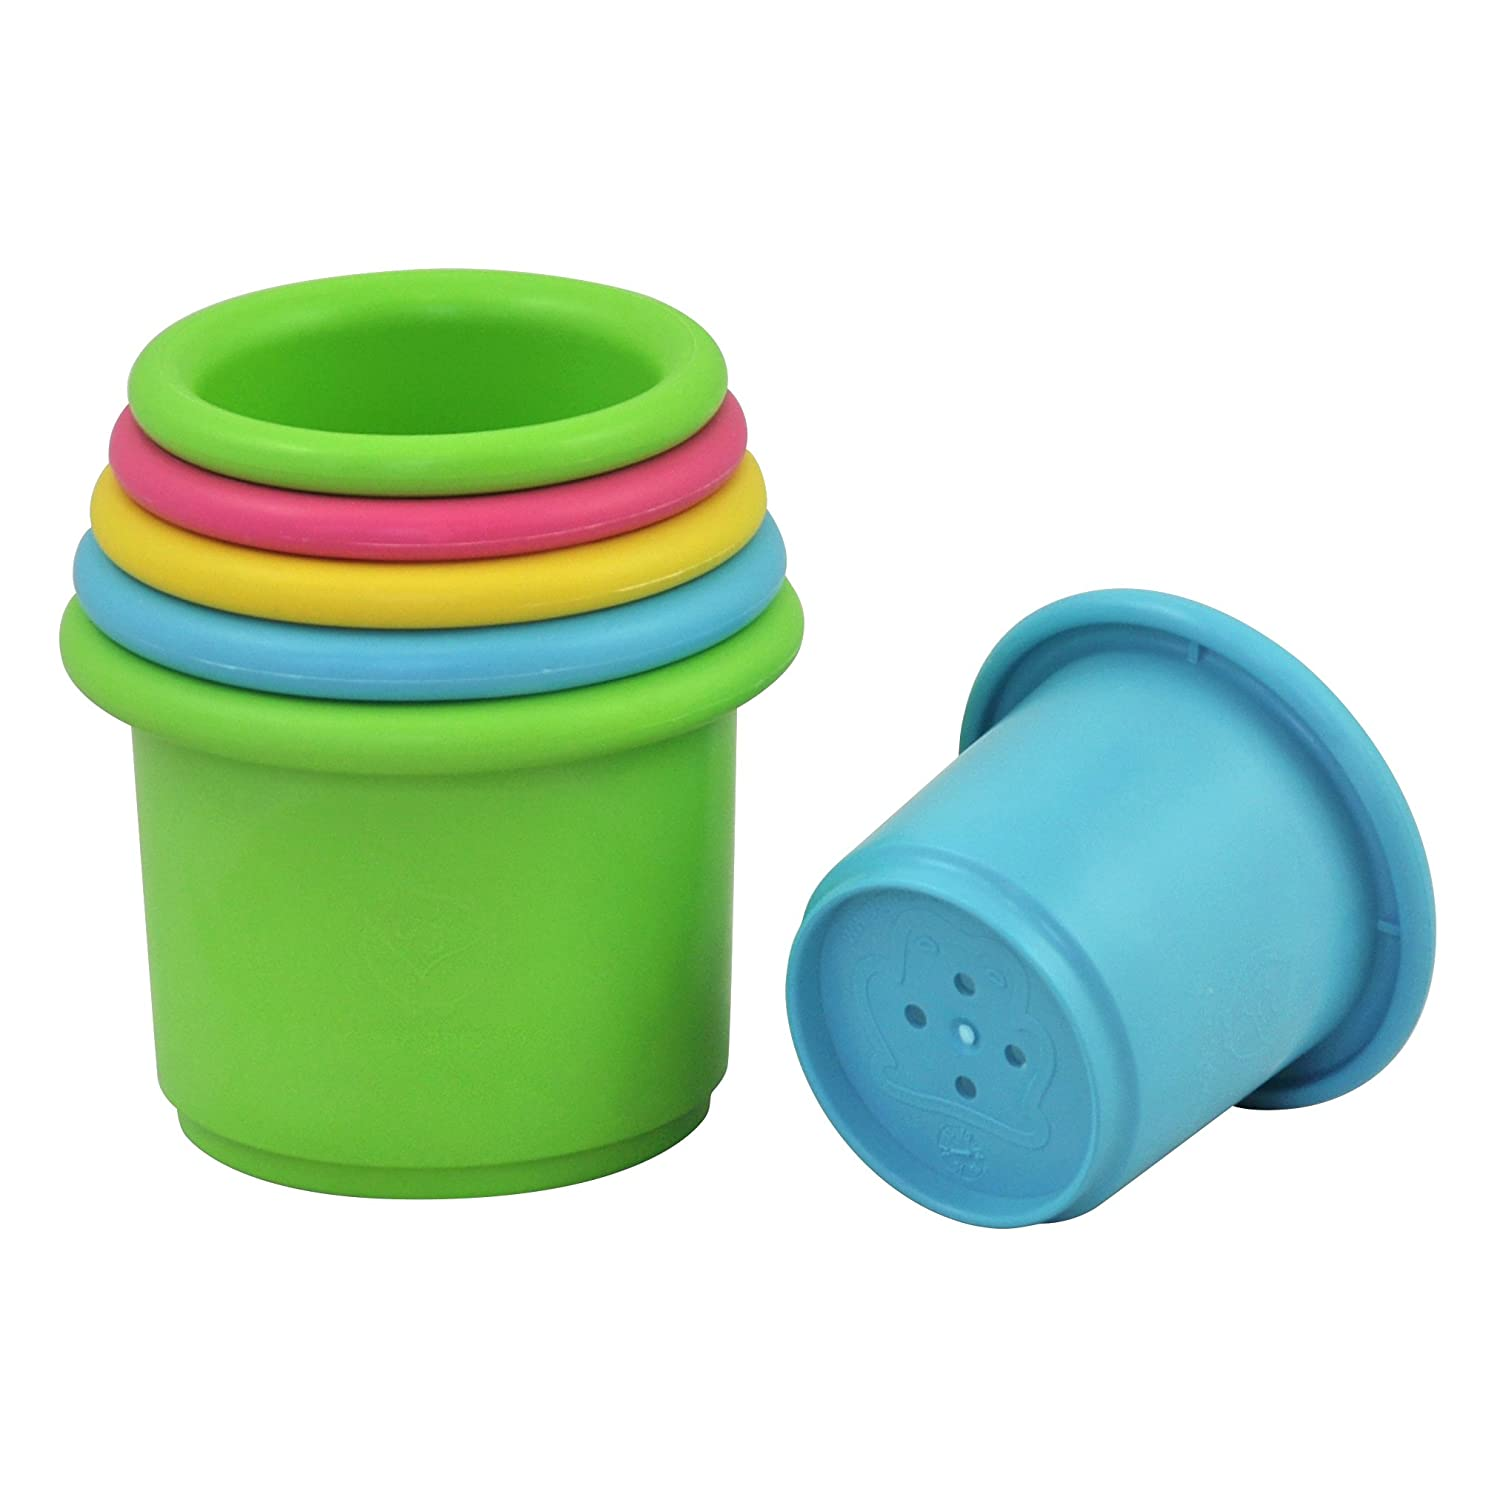 green sprouts Sprout Ware Stacking Cups made from Plants (6 cups) | Encourages whole learning the healthy & natural way | Fun for bath, pool, water, & sand play, Holes for sifting & sprinkling